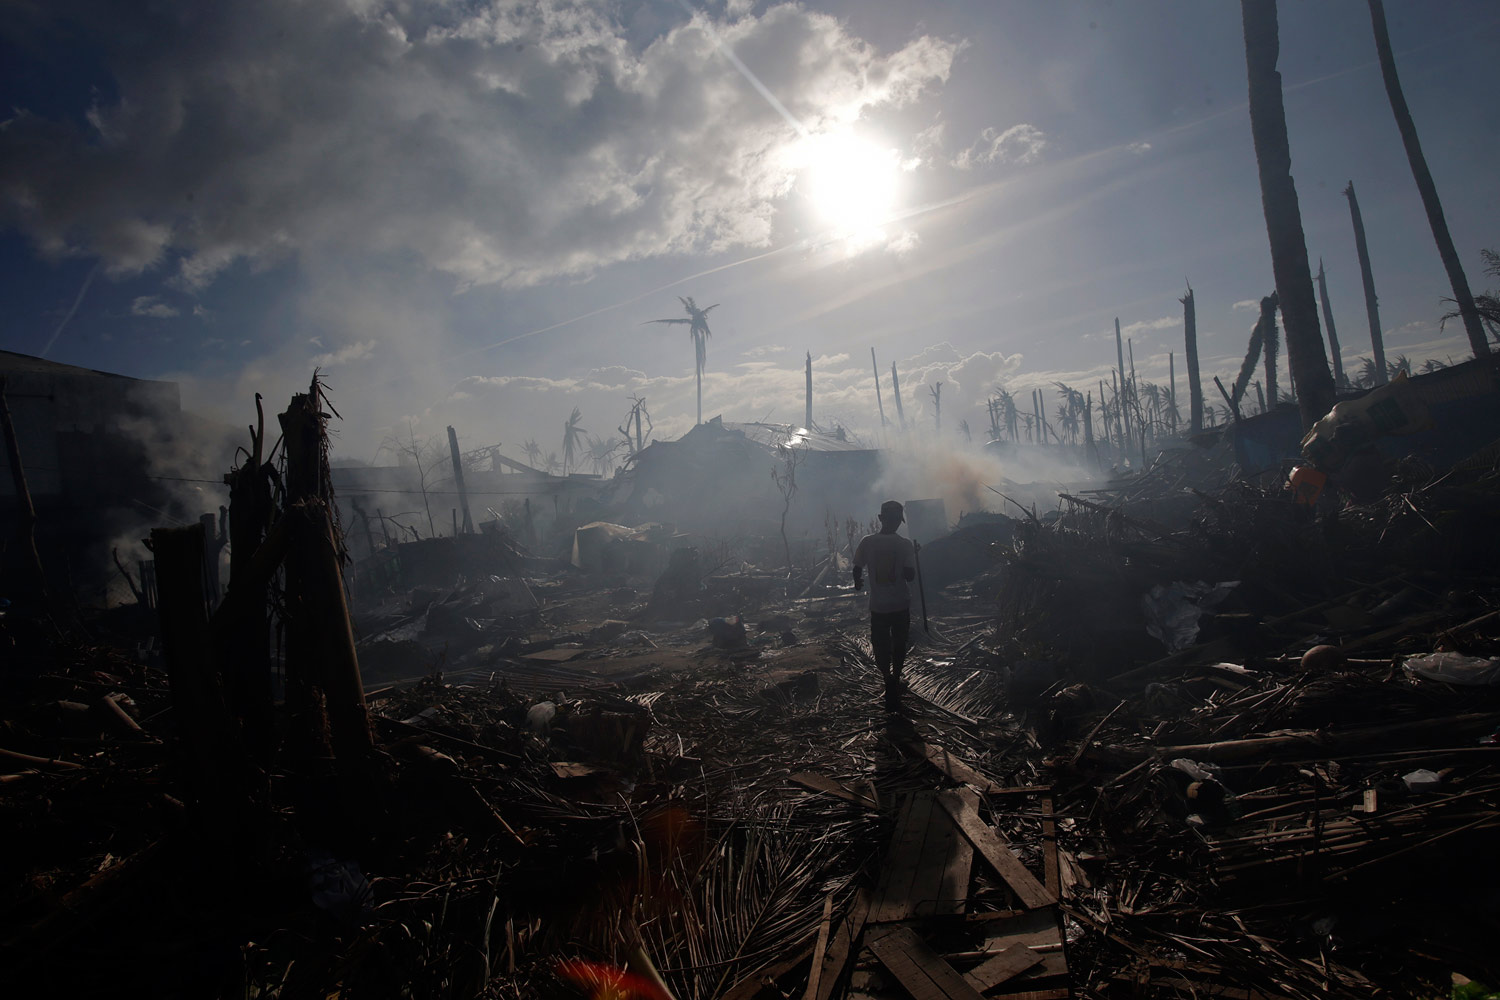 climate change is the tragedy of the global commons the nation a neighborhood in the devastated by typhoon haiyan reuters john javellana